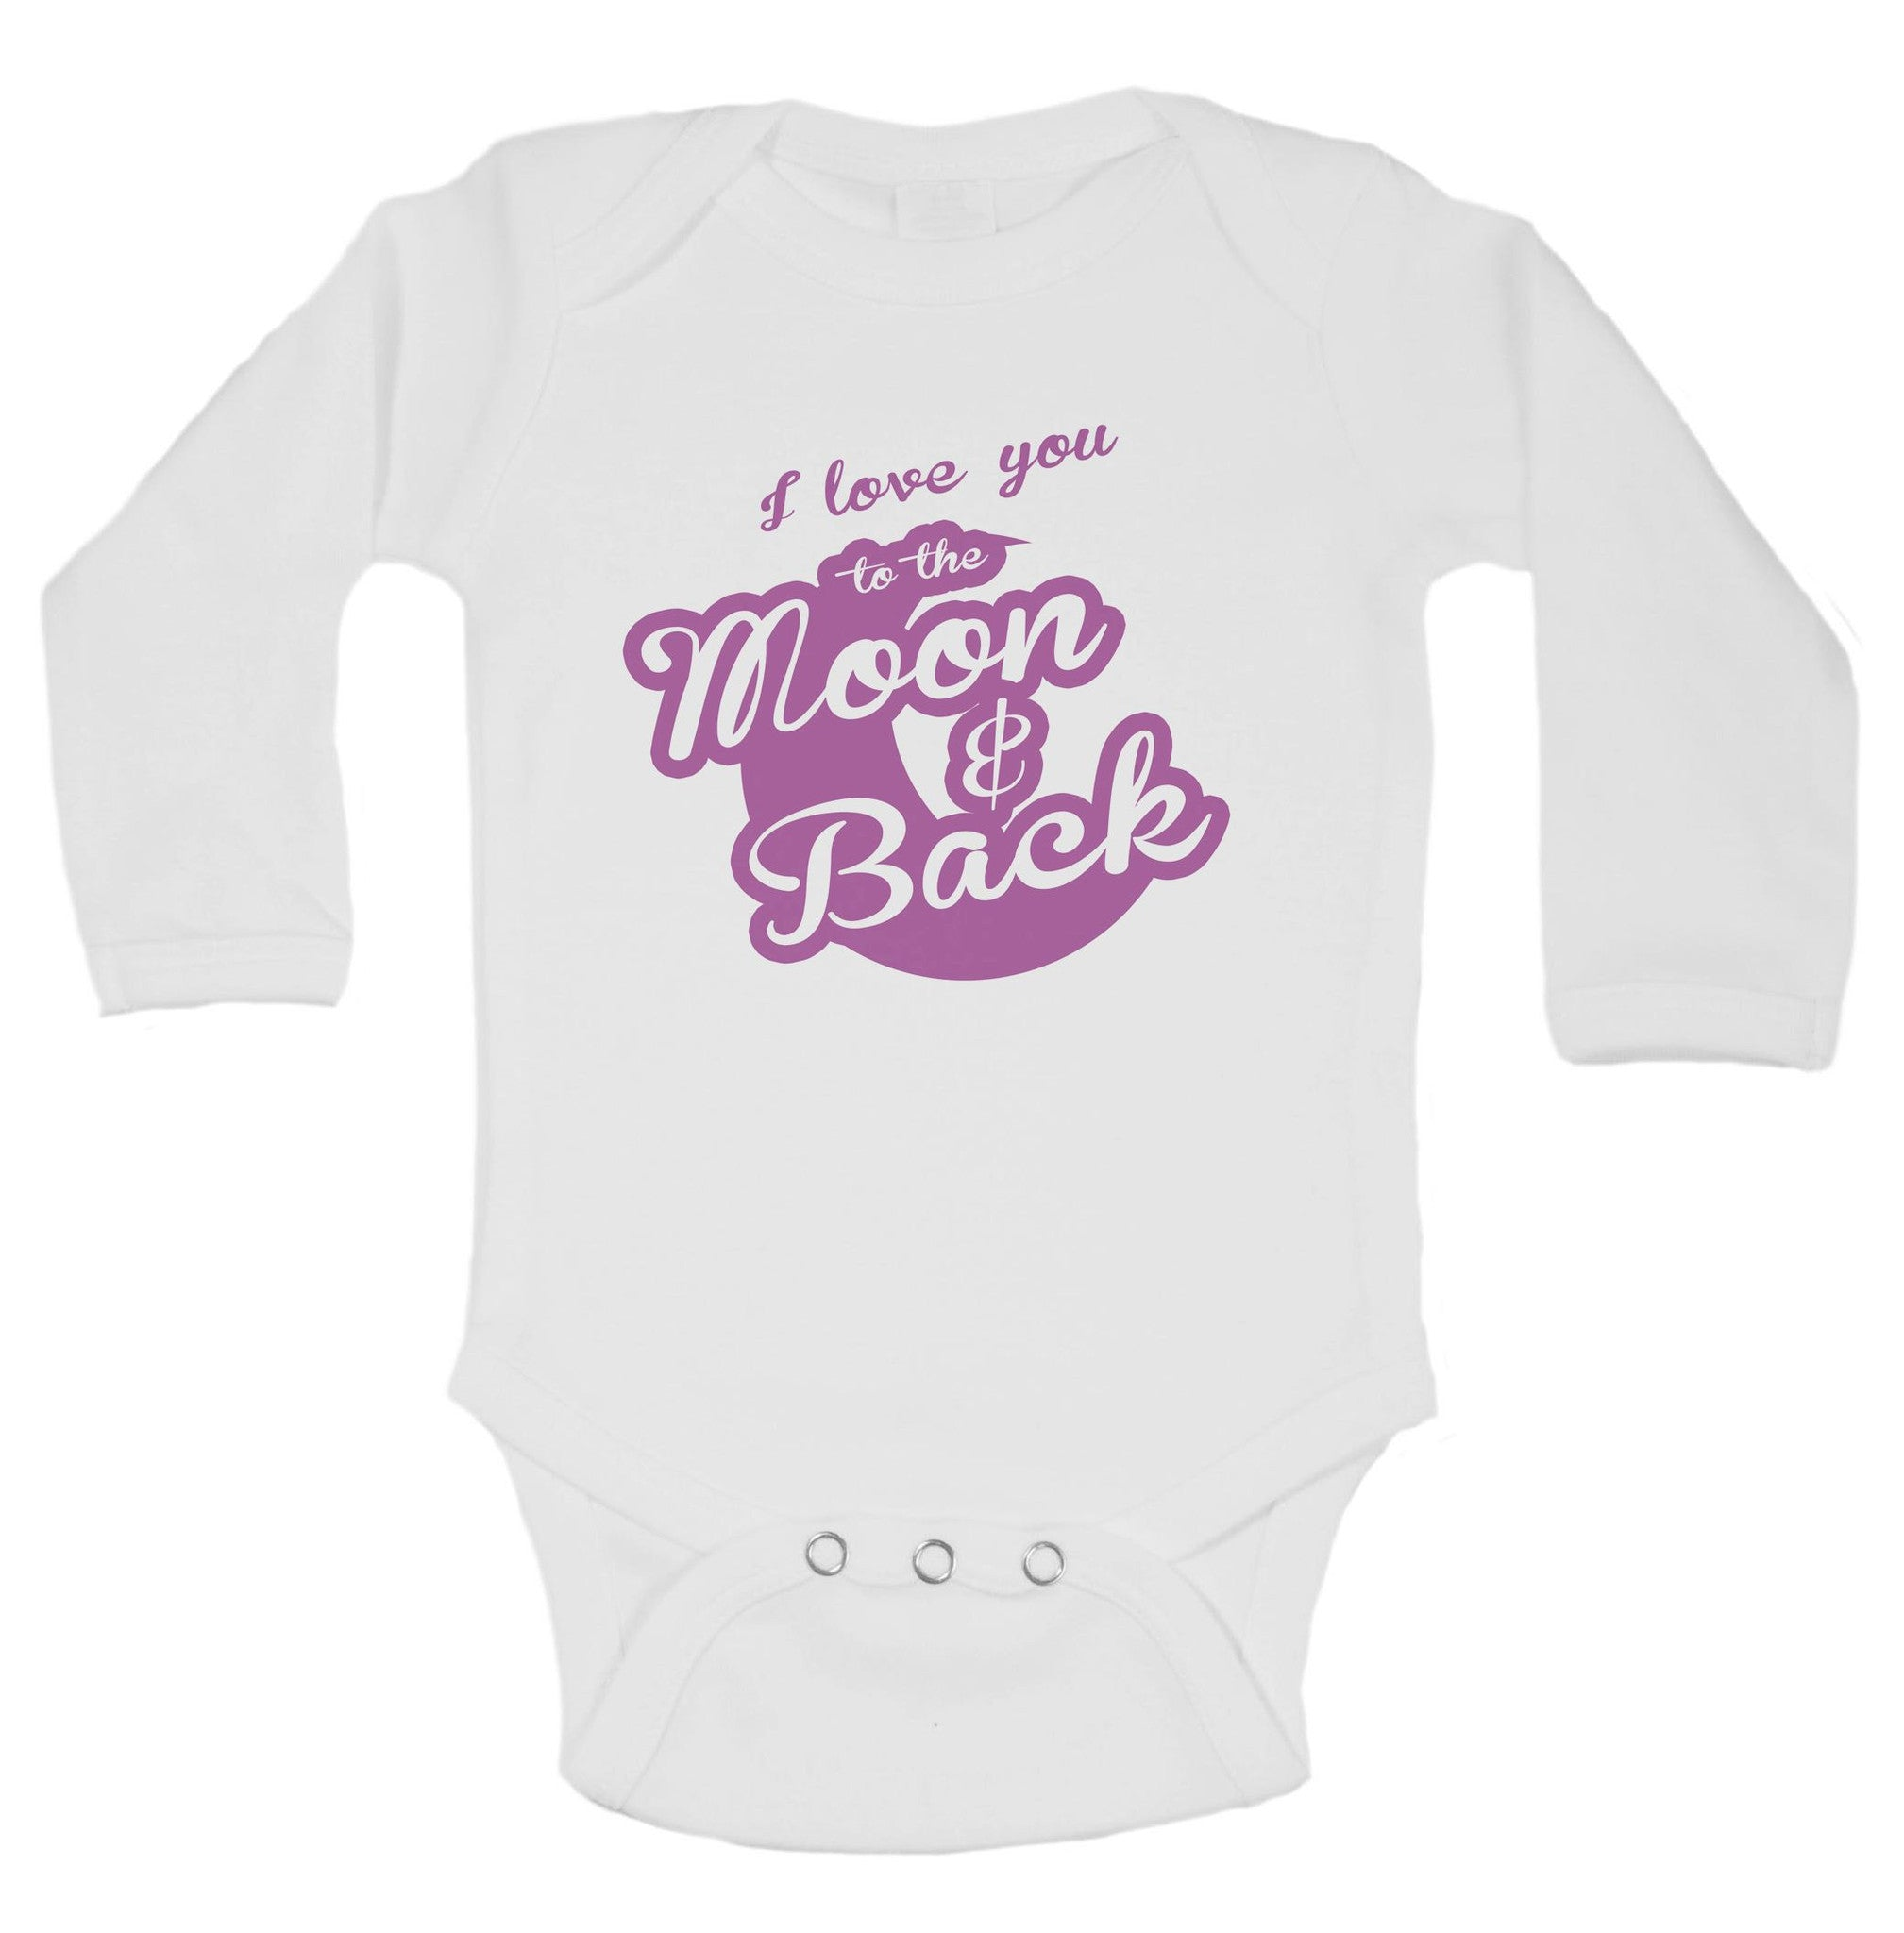 I Love You To The Moon & Back Funny Kids Onesie - B20 - Funny Shirts Tank Tops Burnouts and Triblends  - 1